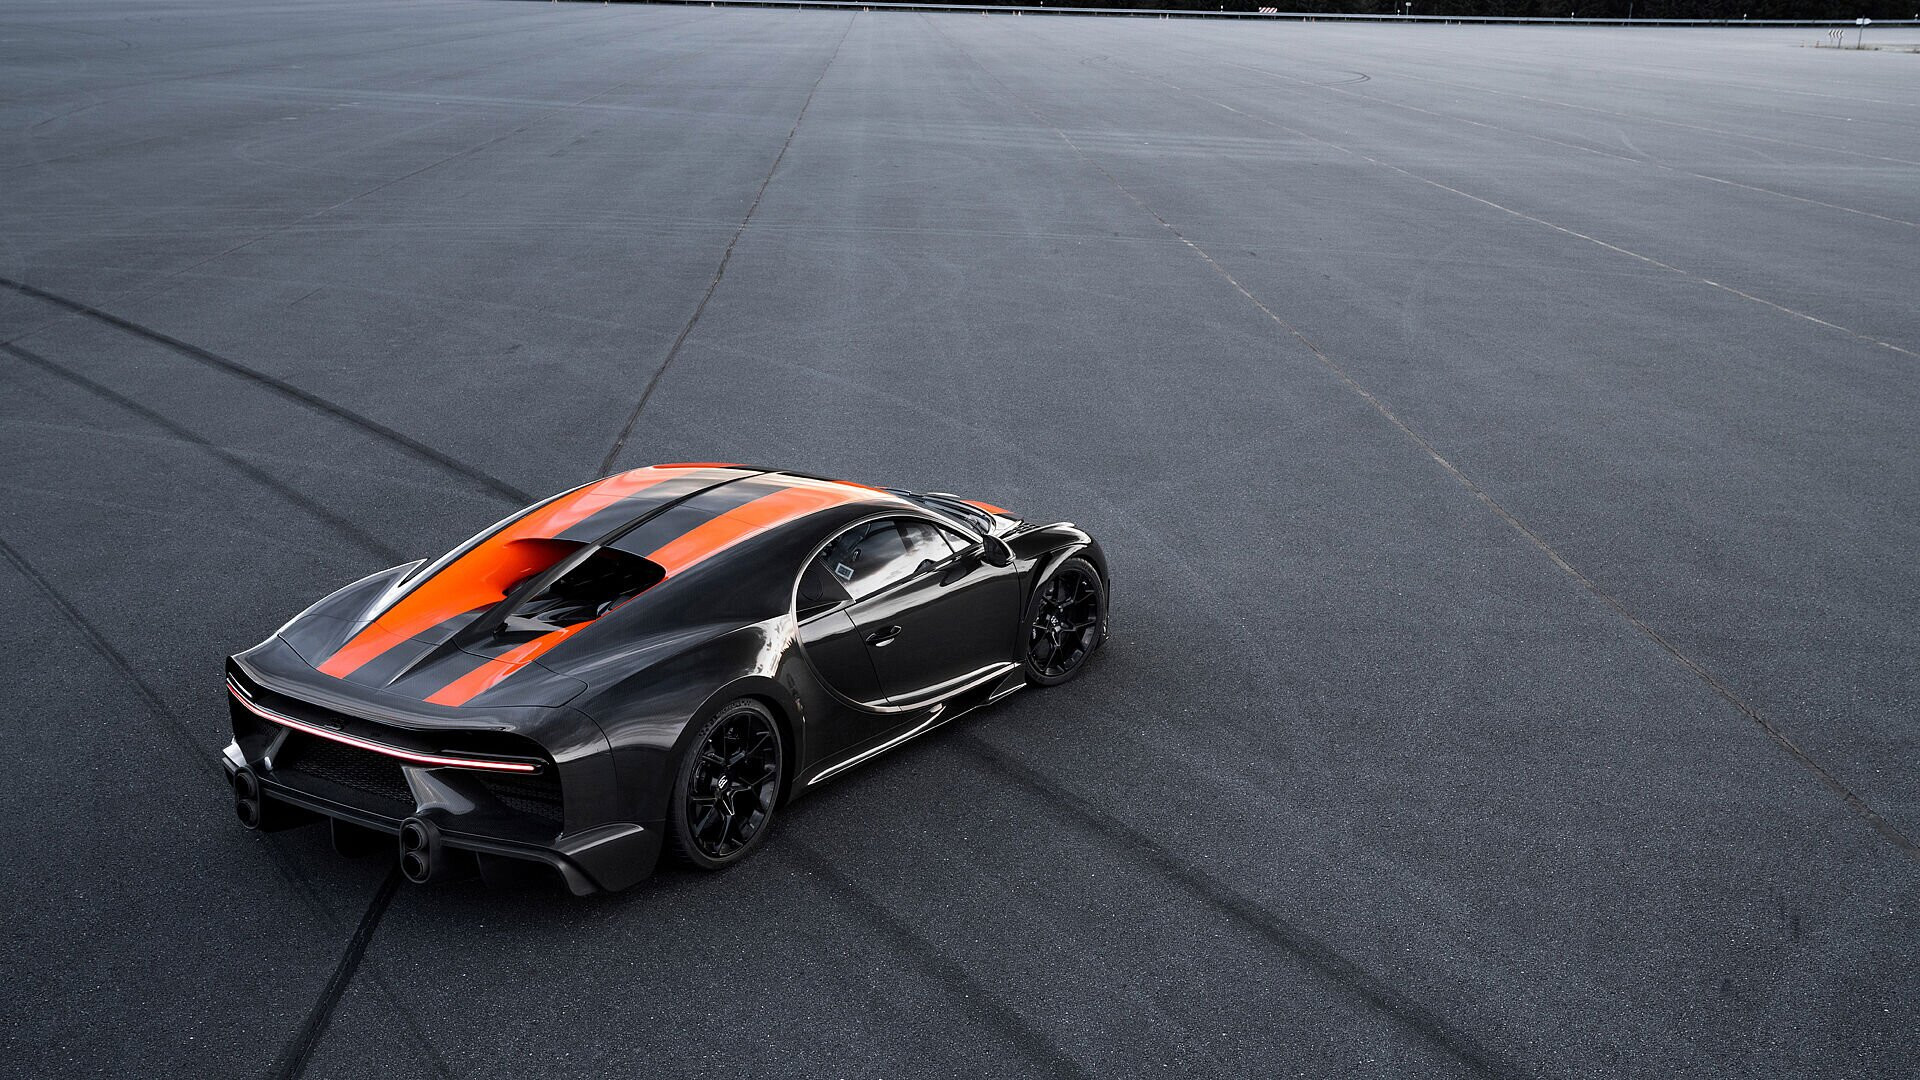 Extreme, exceptional & exclusive -The new Twin Turbo Furious 300+ - Image 5